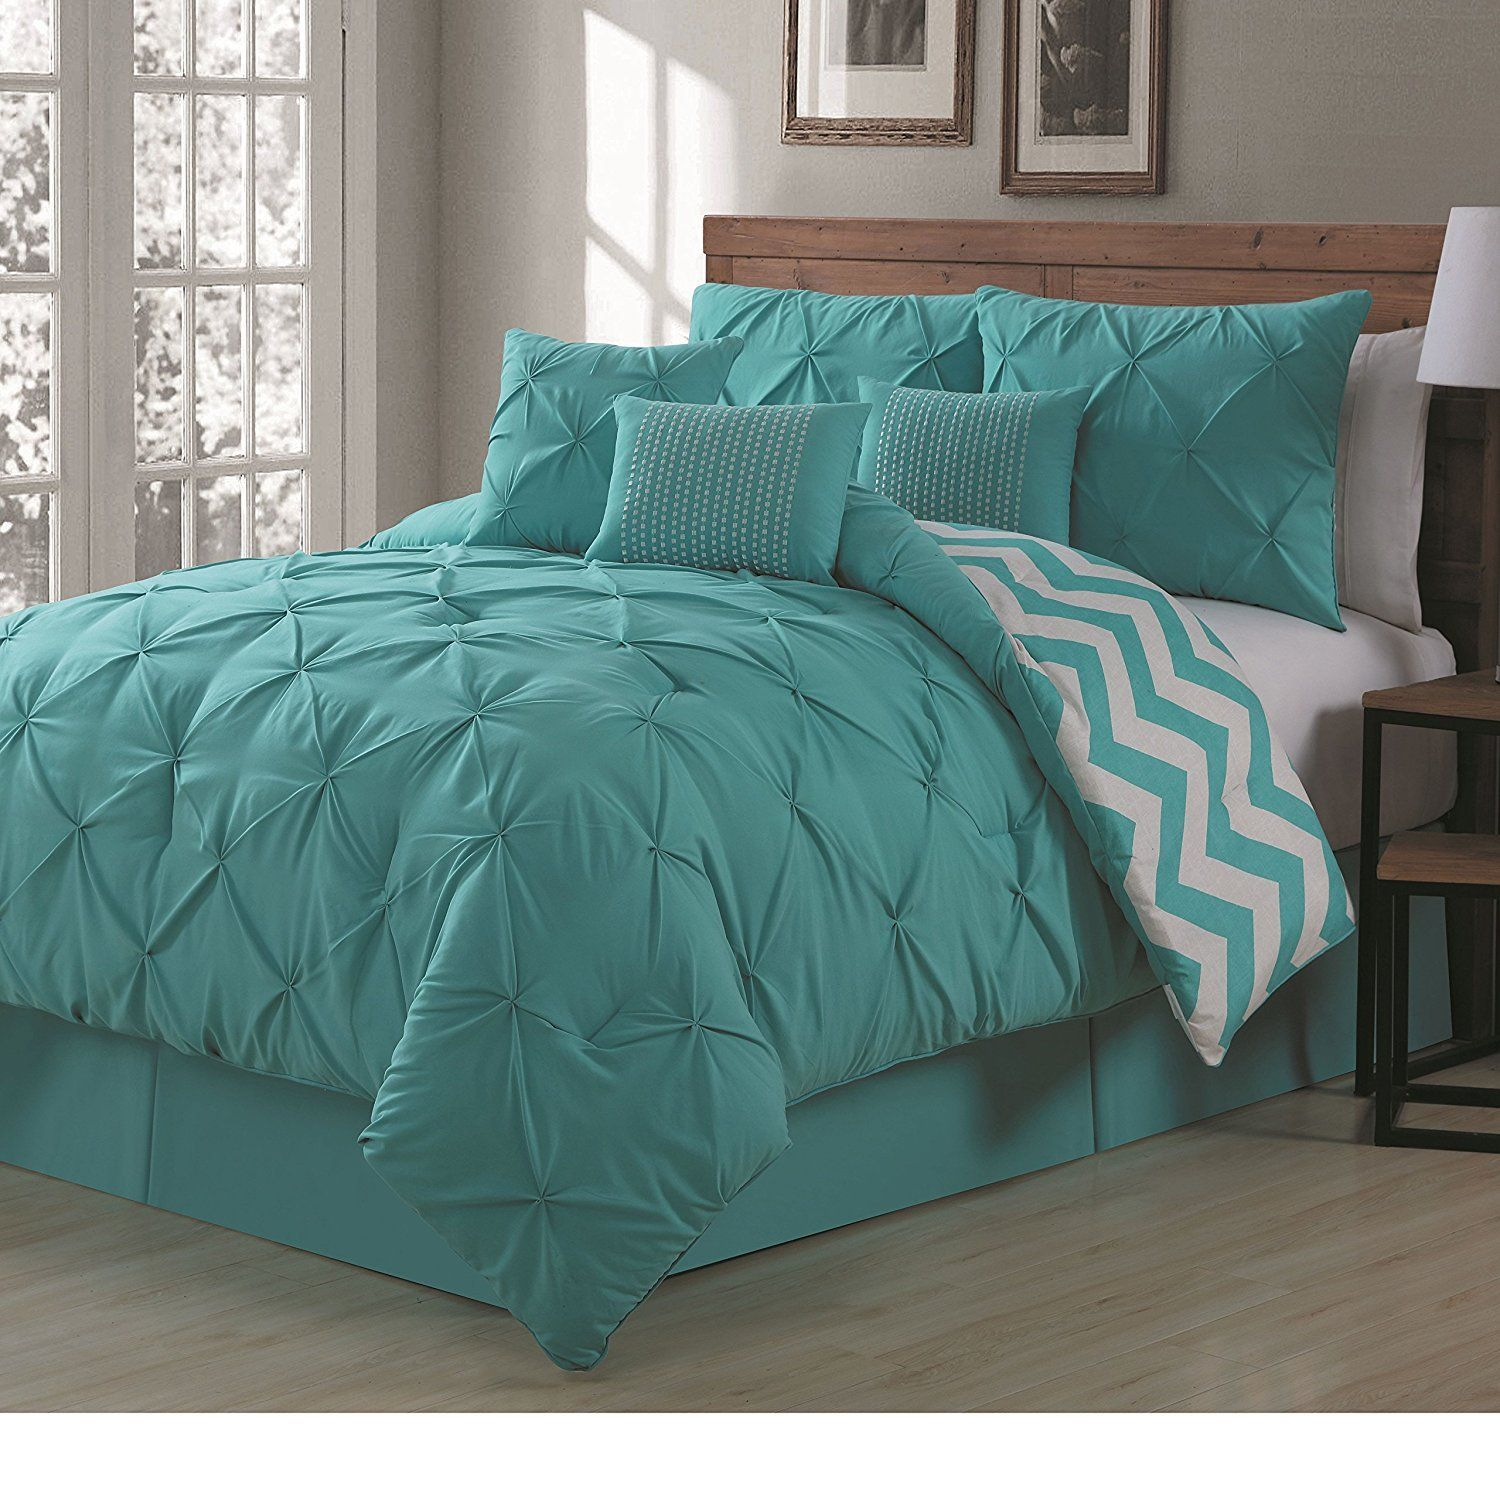 favorite pleat pleated blue bedroom set themed pinch moroccan comforter inspiration navy also morrocan white and queen plush